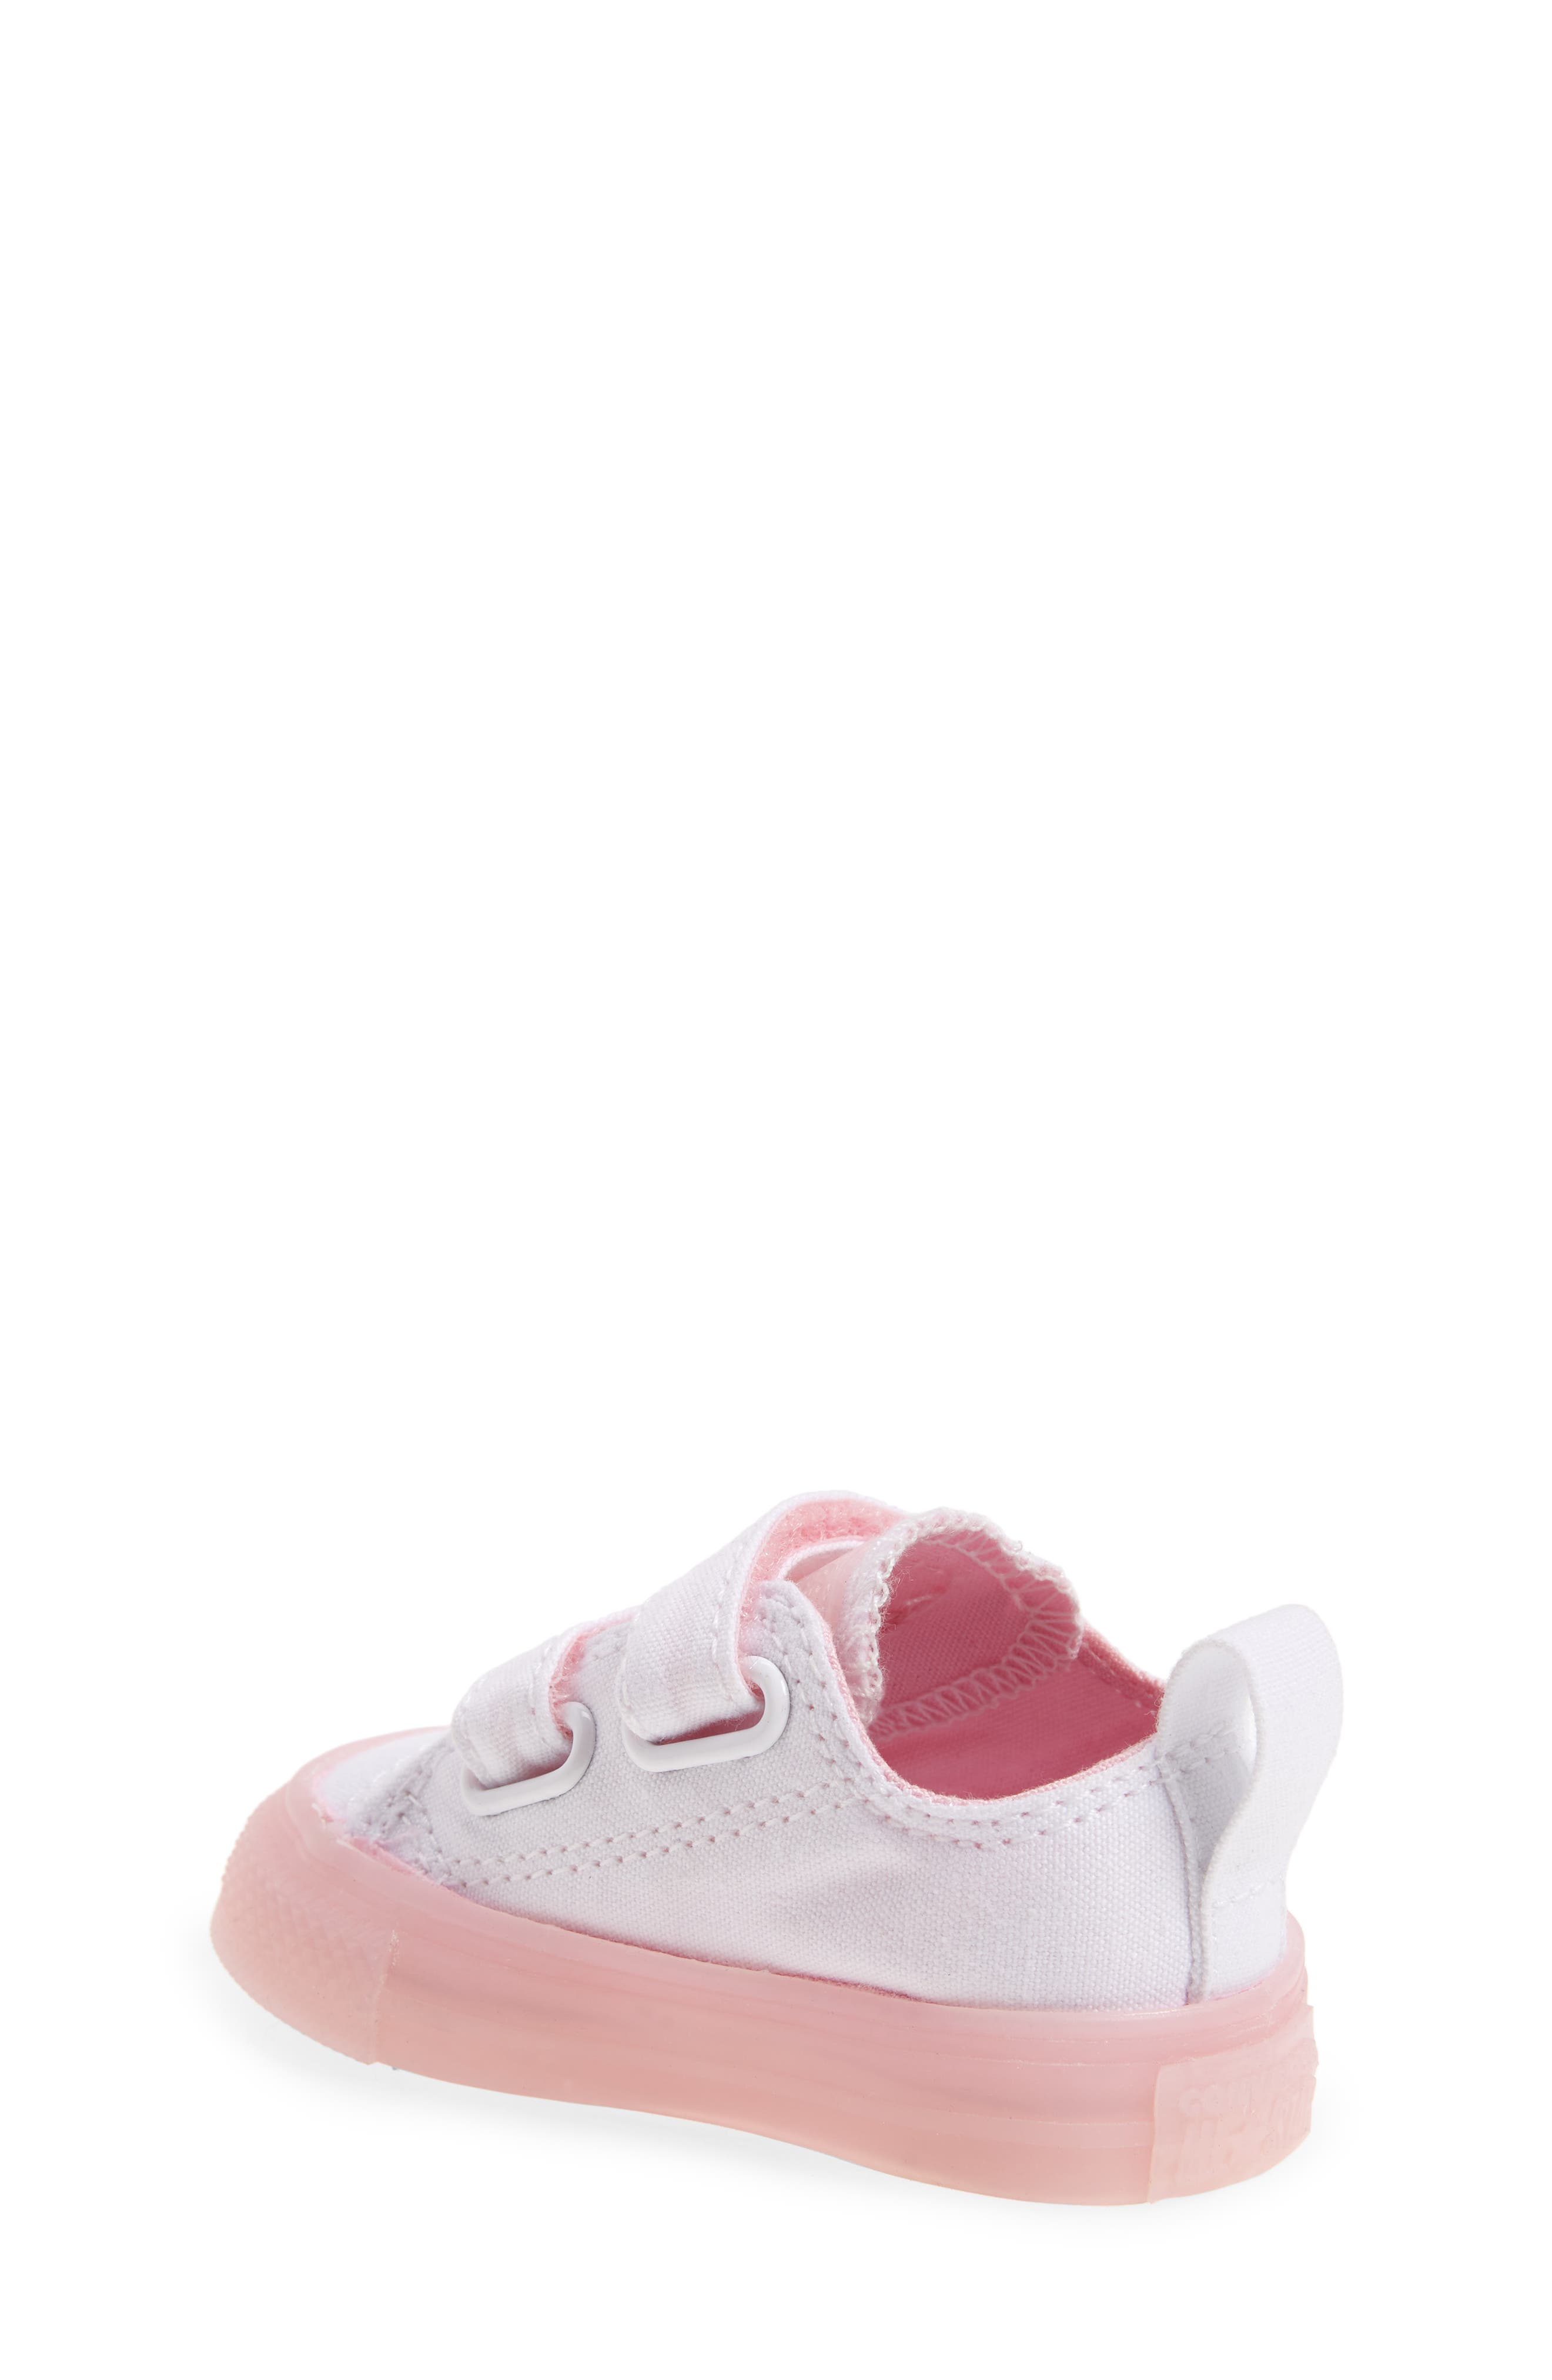 Chuck Taylor<sup>®</sup> All Star<sup>®</sup> Jelly Sneaker,                             Alternate thumbnail 2, color,                             White/ Cherry